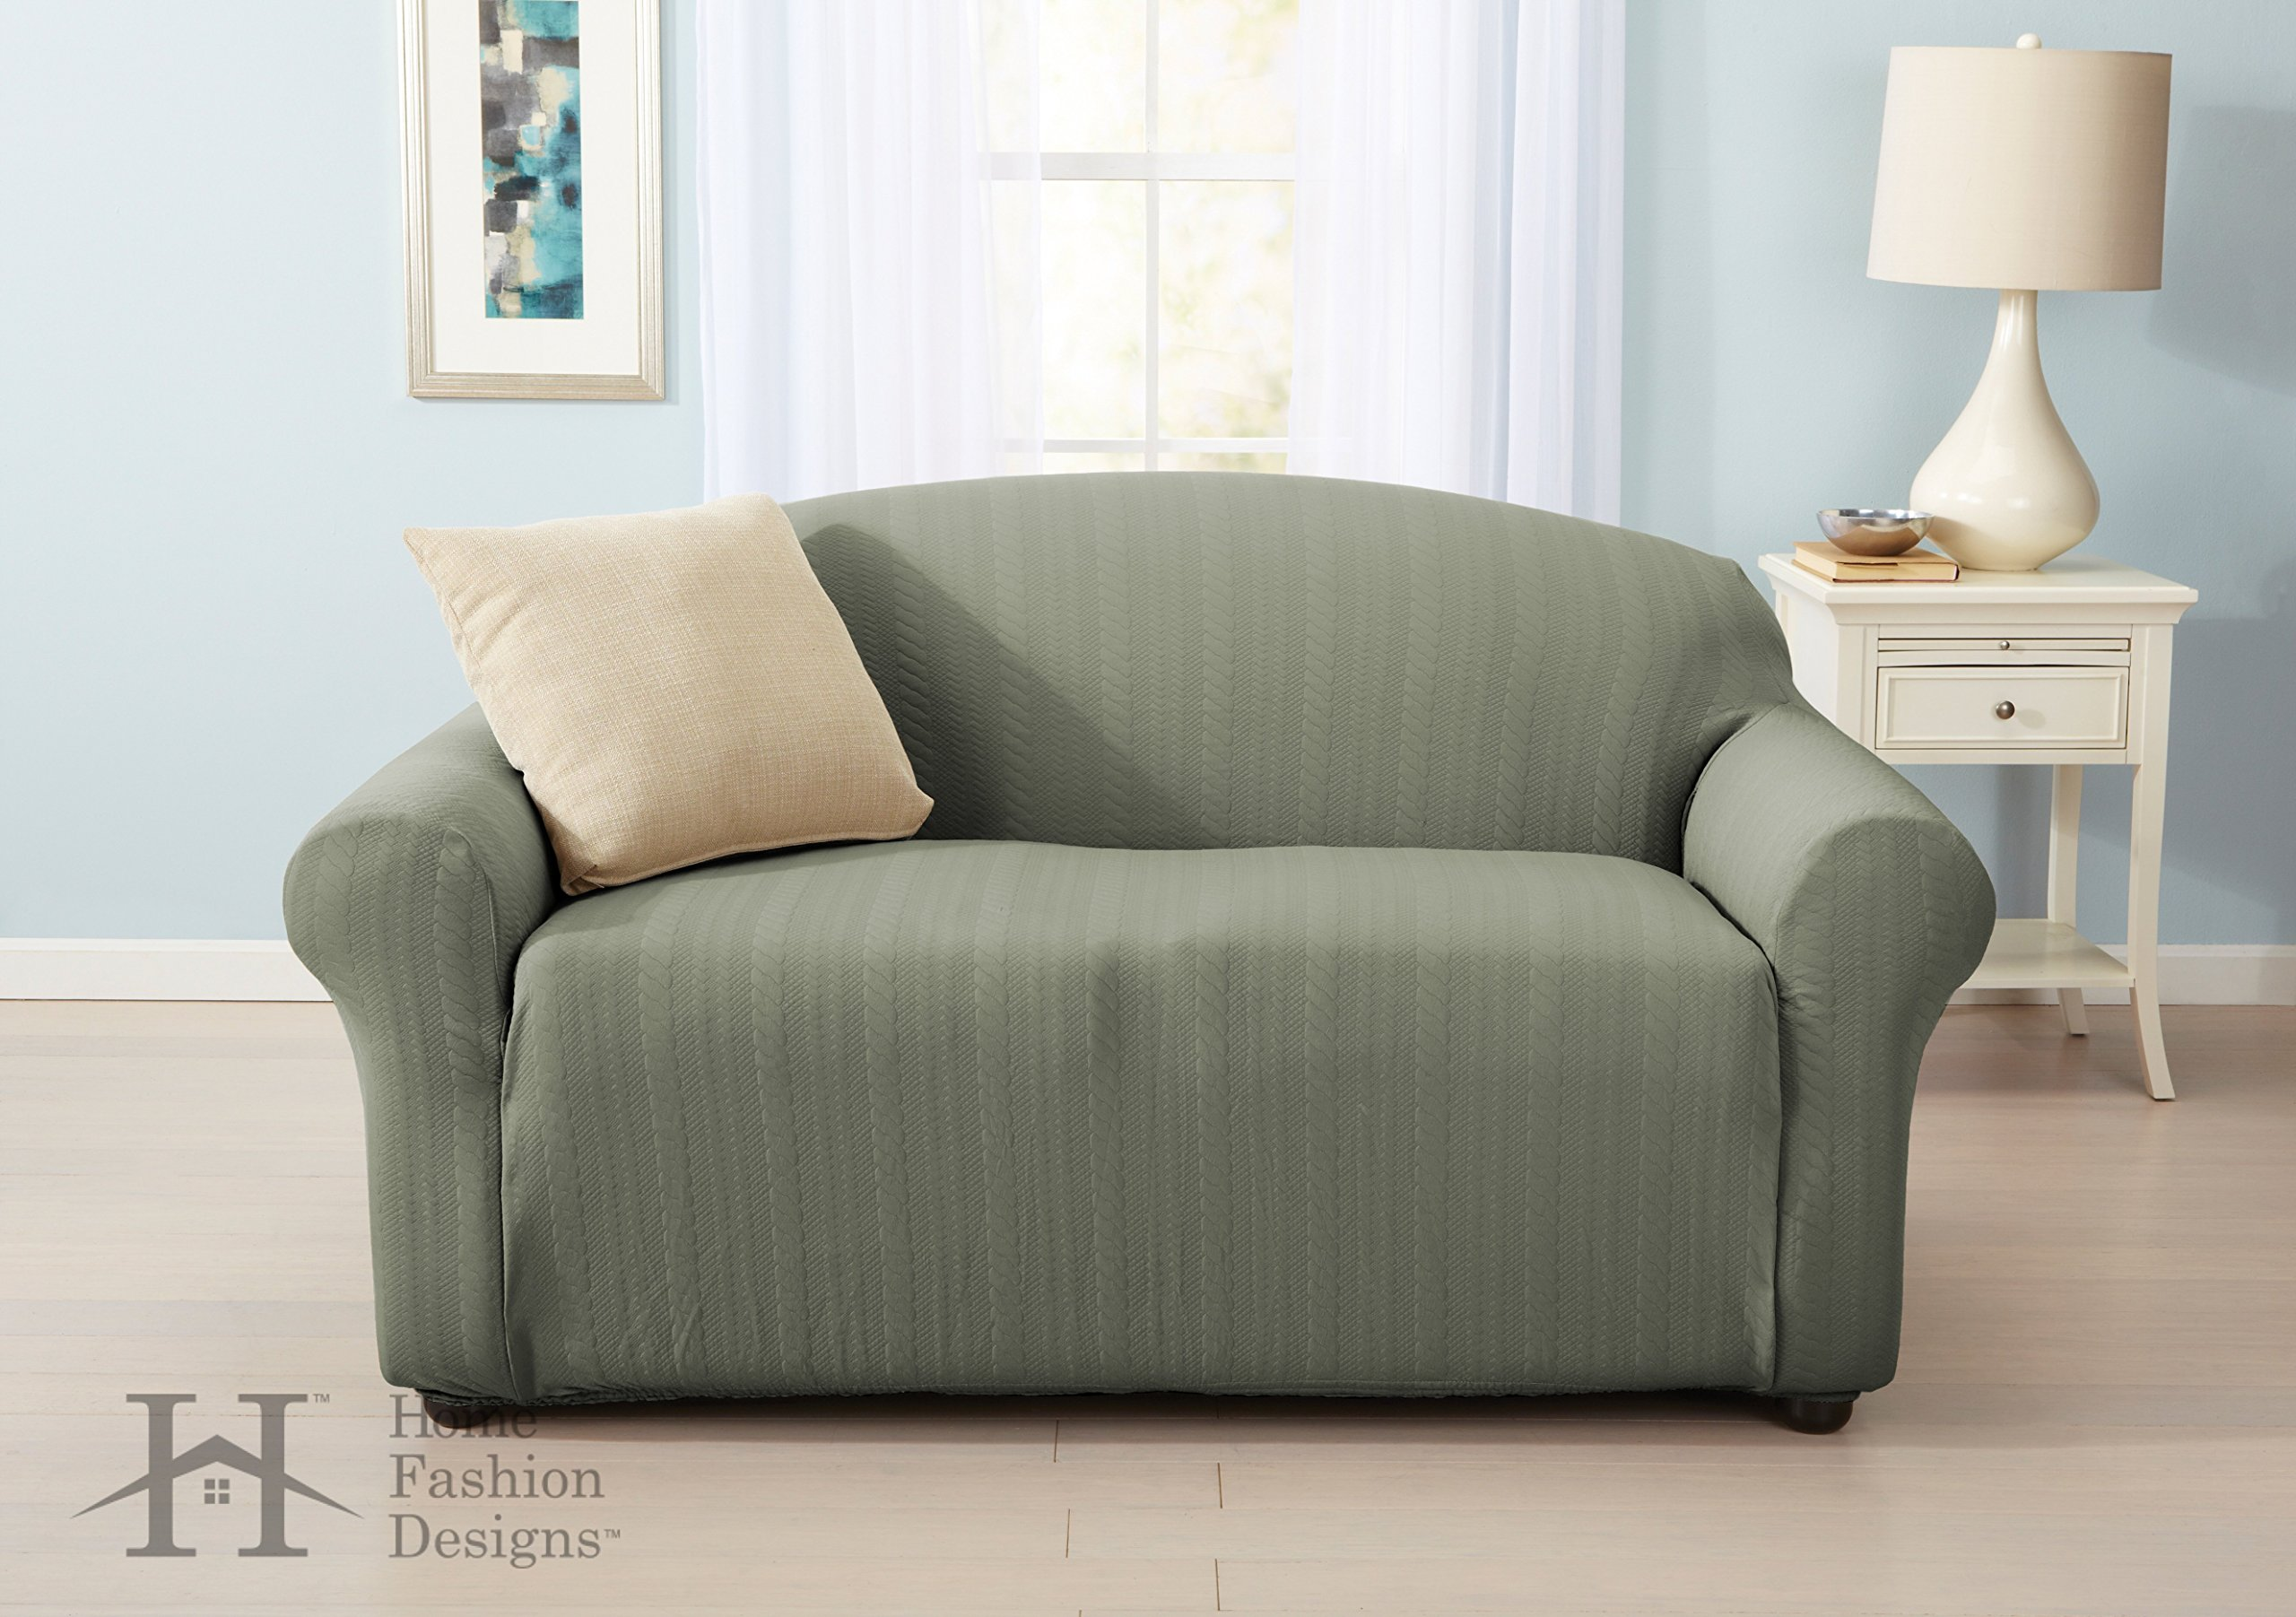 Home Fashion Designs Form Fit, Slip Resistant, Stylish Furniture Shield/Protector with Cable Knit Fabric. Darla Collection Platinum Strapless Slipcover. By Brand. (Loveseat, Tea Green) by Home Fashion Designs